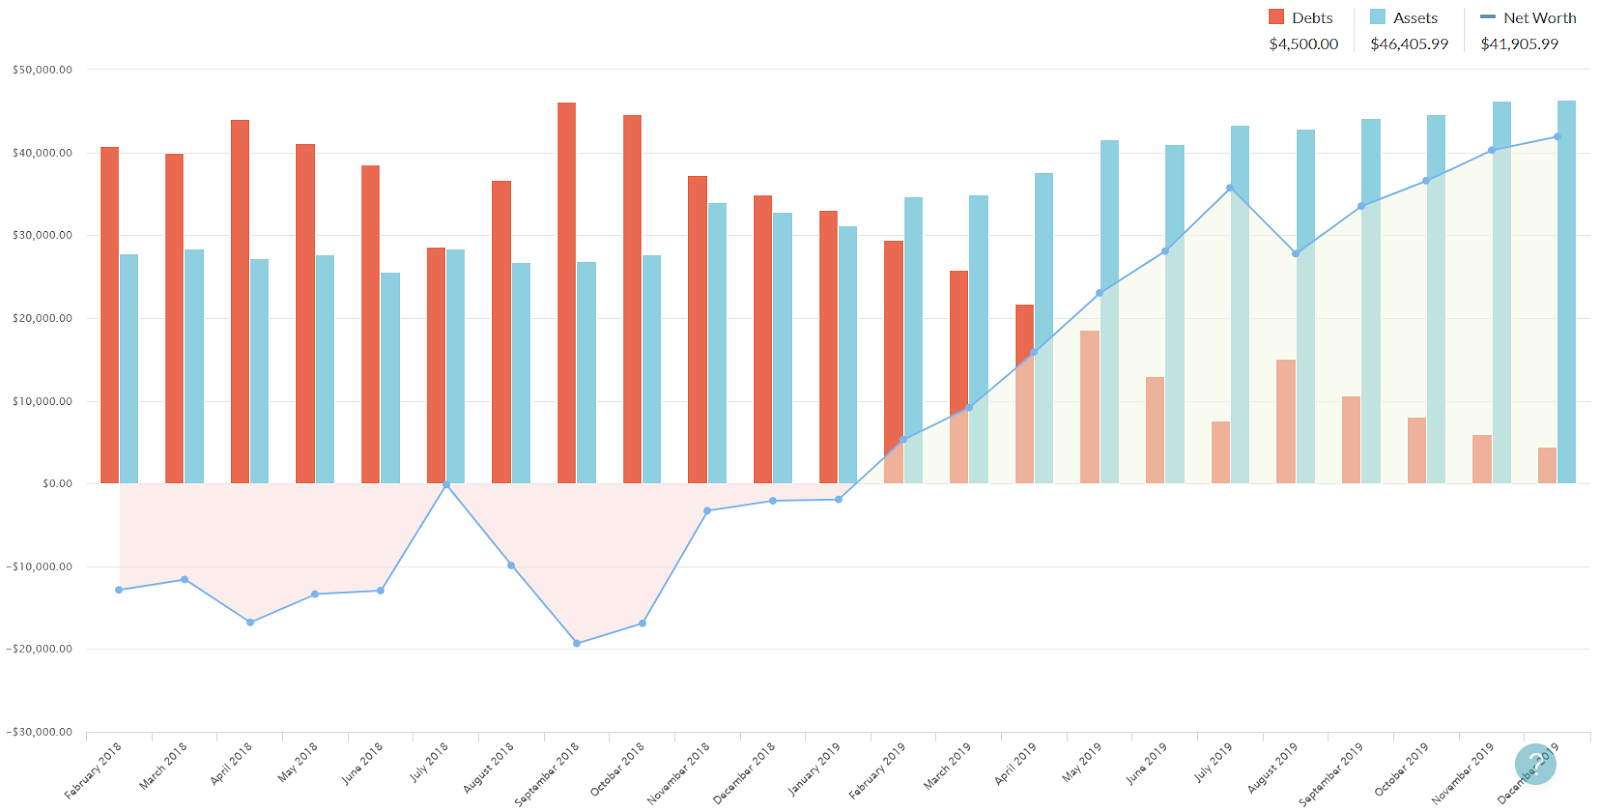 Is YNAB Worth the Cost? One YNAB user got out of debt using YNAB for two years